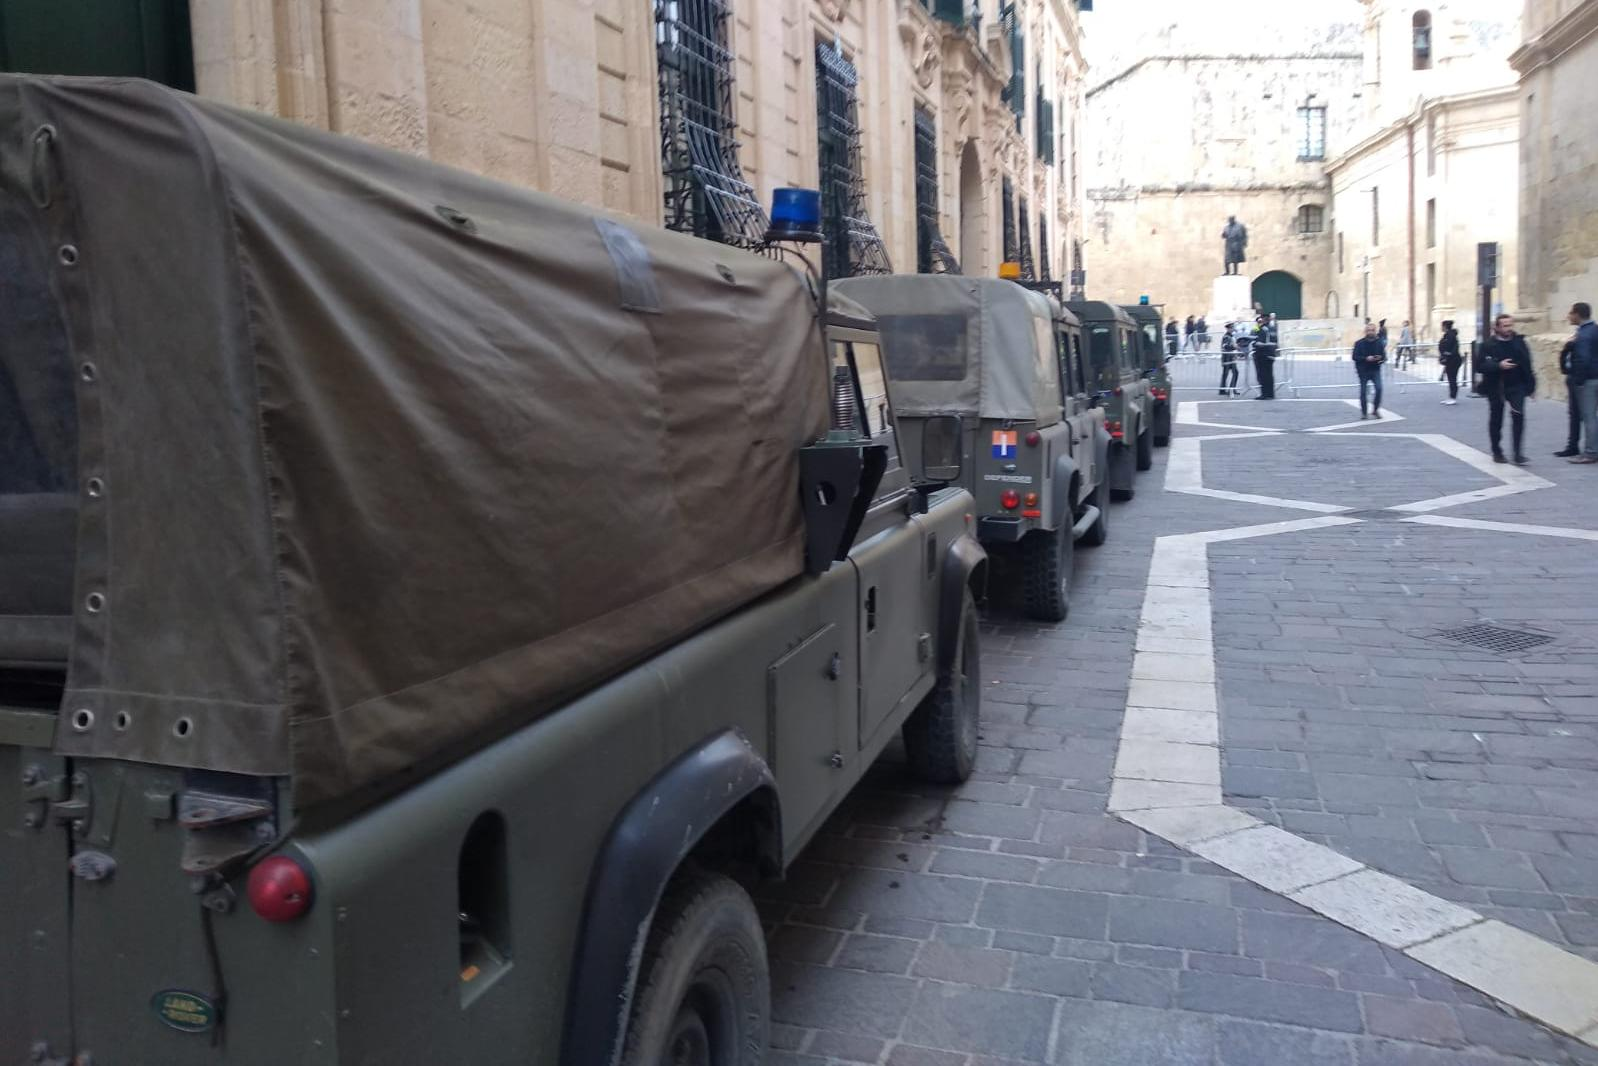 Army reinforcements were taken to the Auberge de Castille in a number of Land Rovers, seen here at the Merchants' Street entrance.